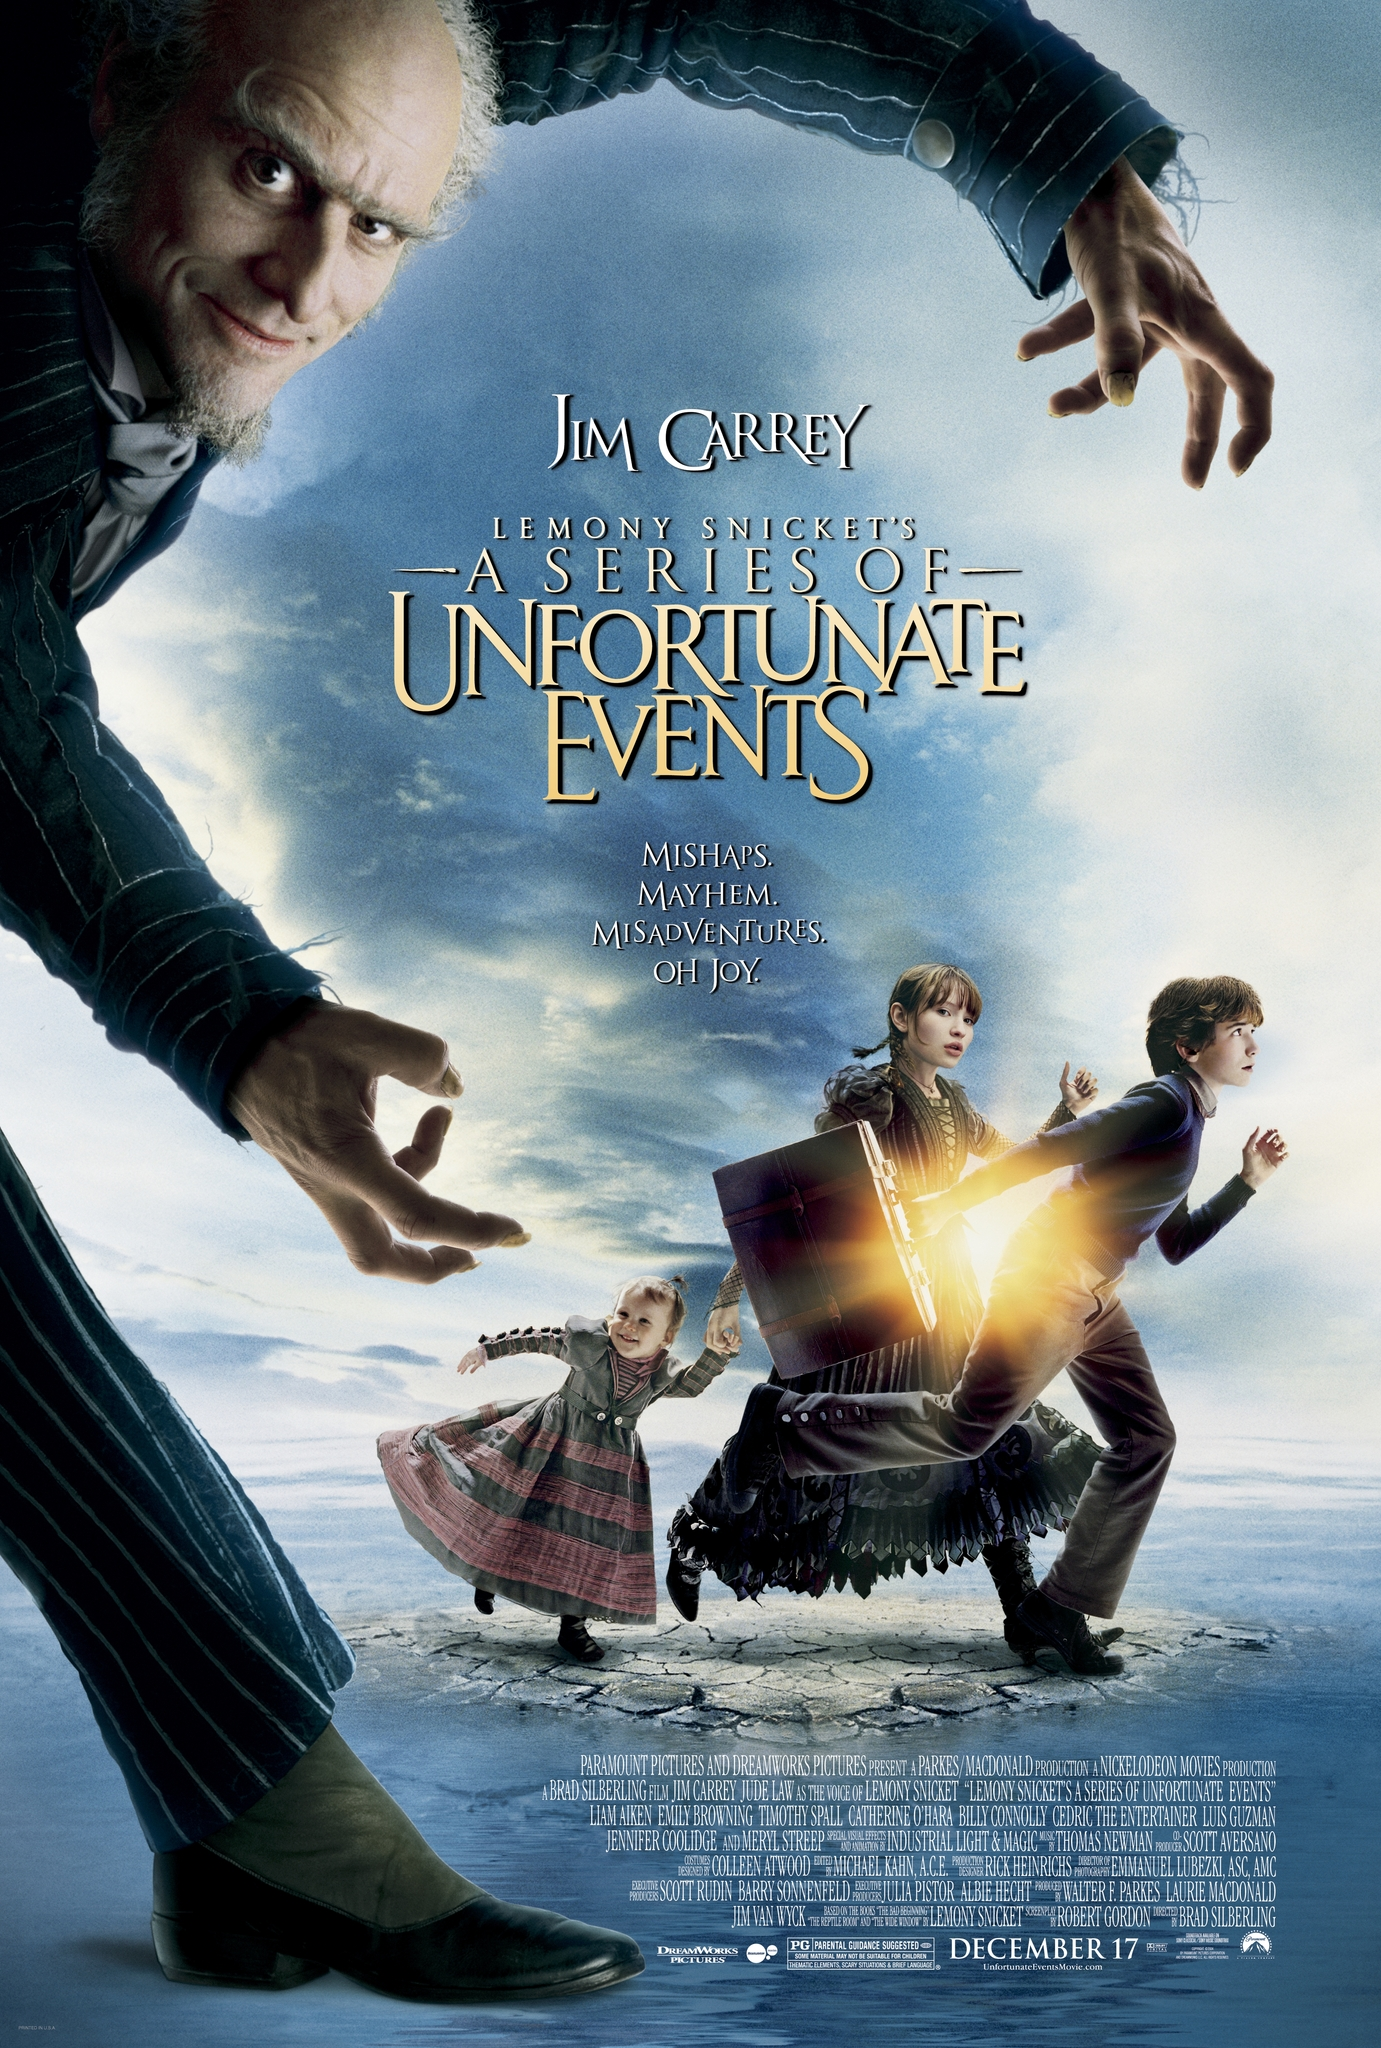 a series of unfortunate events free online movie